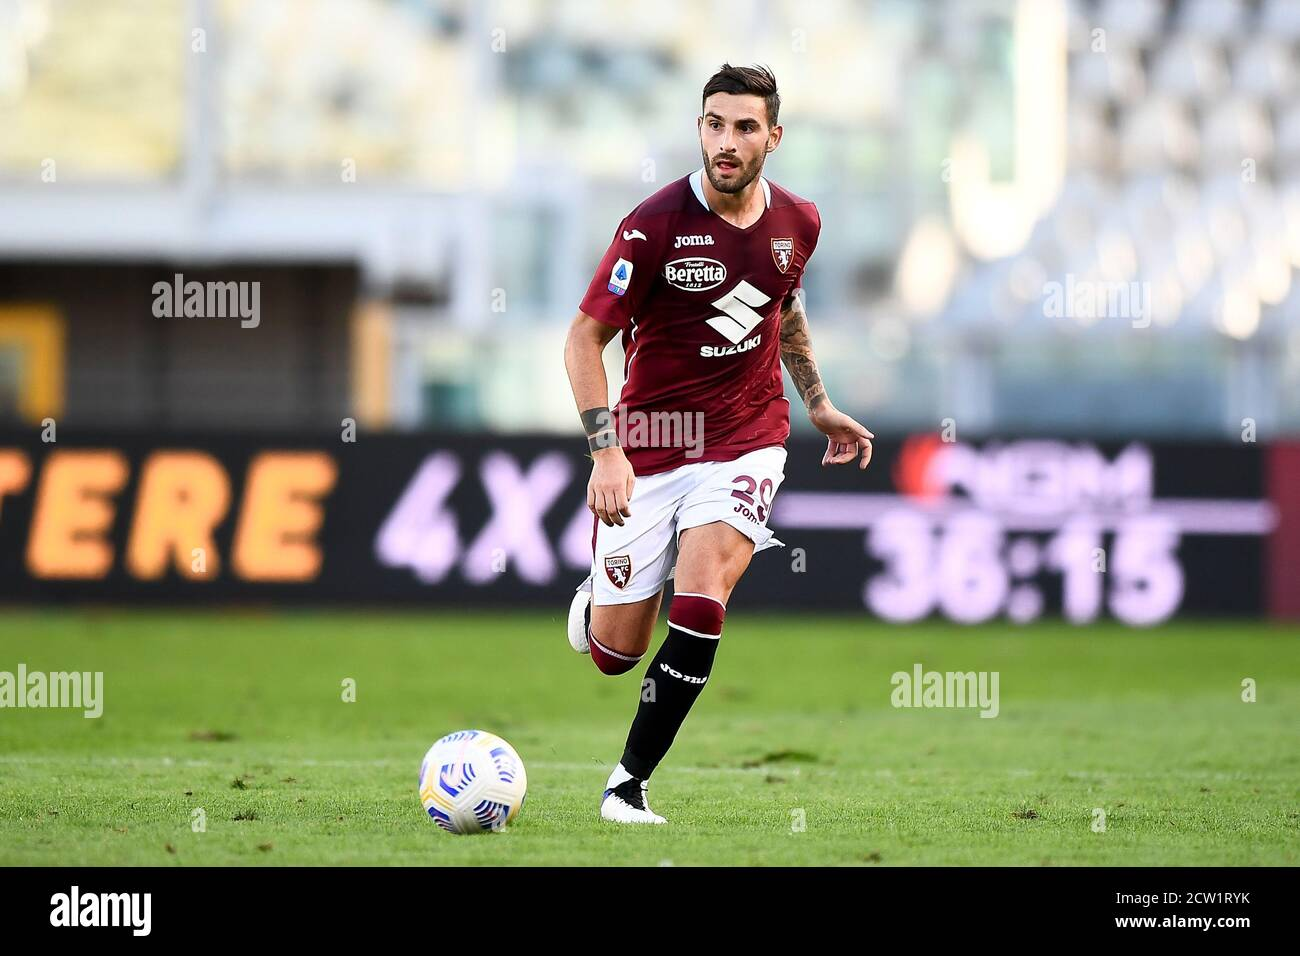 Turin, Italy. 26th Sep, 2020. TURIN, ITALY - September 26, 2020: Nicola Murru of Torino FC in action during the Serie A football match between Torino FC and Atalanta BC. Atalanta BC won 4-2 over Torino FC. (Photo by Nicolò Campo/Sipa USA) Credit: Sipa USA/Alamy Live News Stock Photo